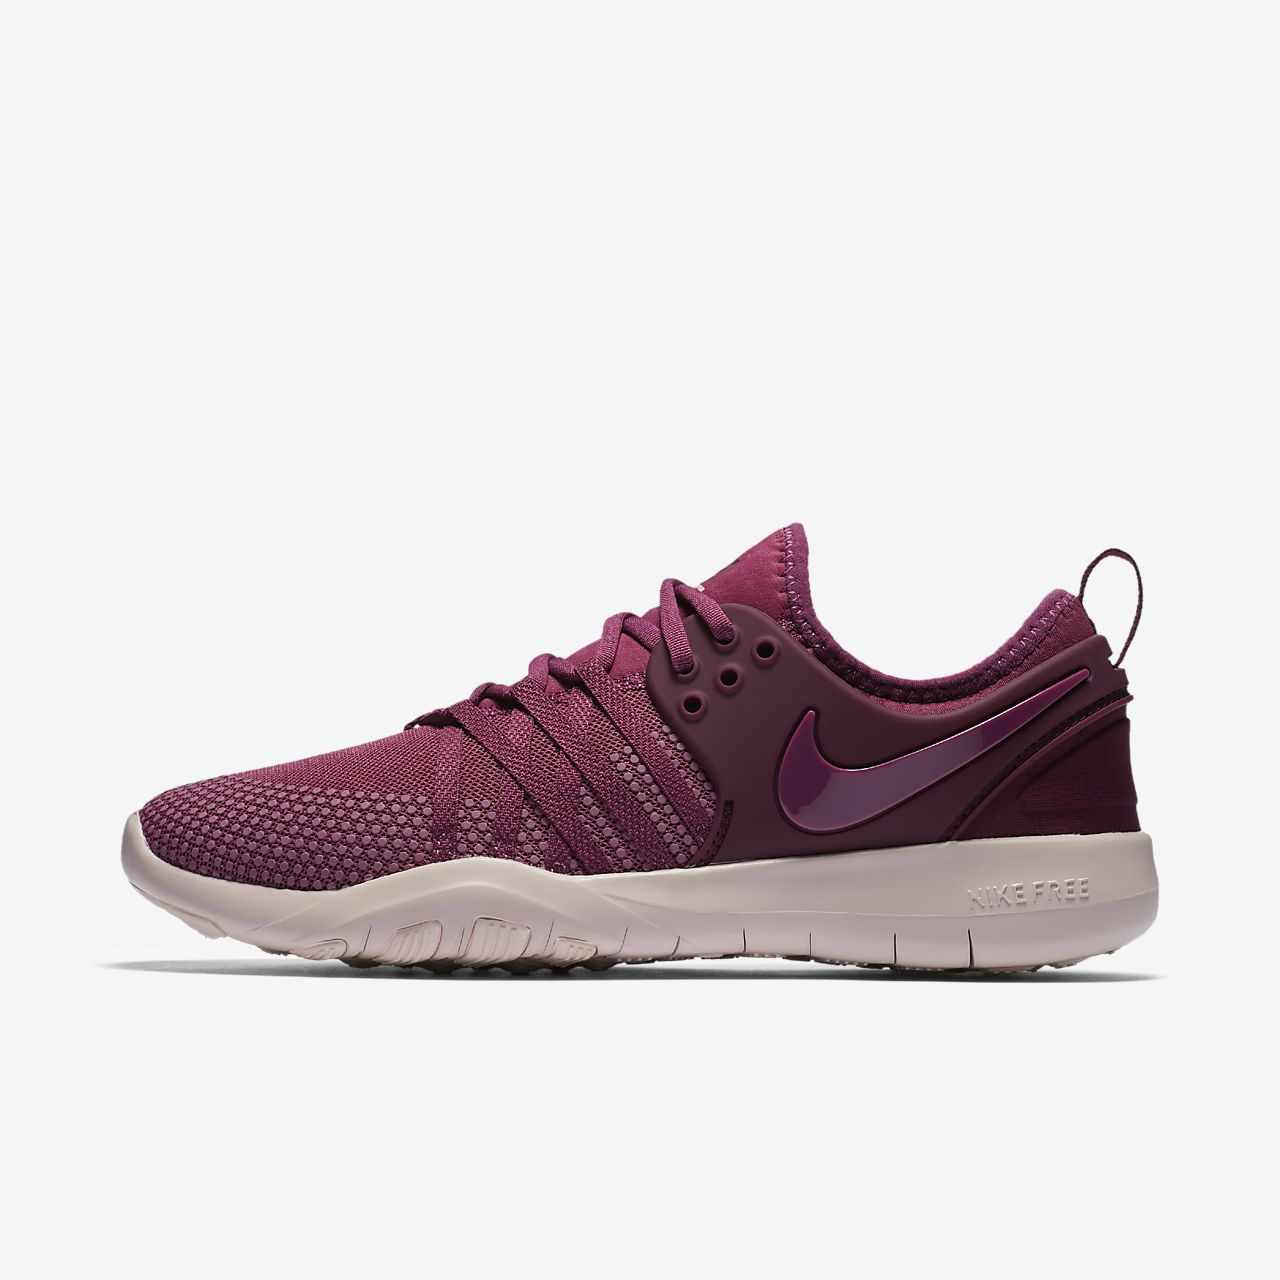 sneakers for cheap 99a9f a2bbd ... Damskie buty treningowe Nike Free TR7